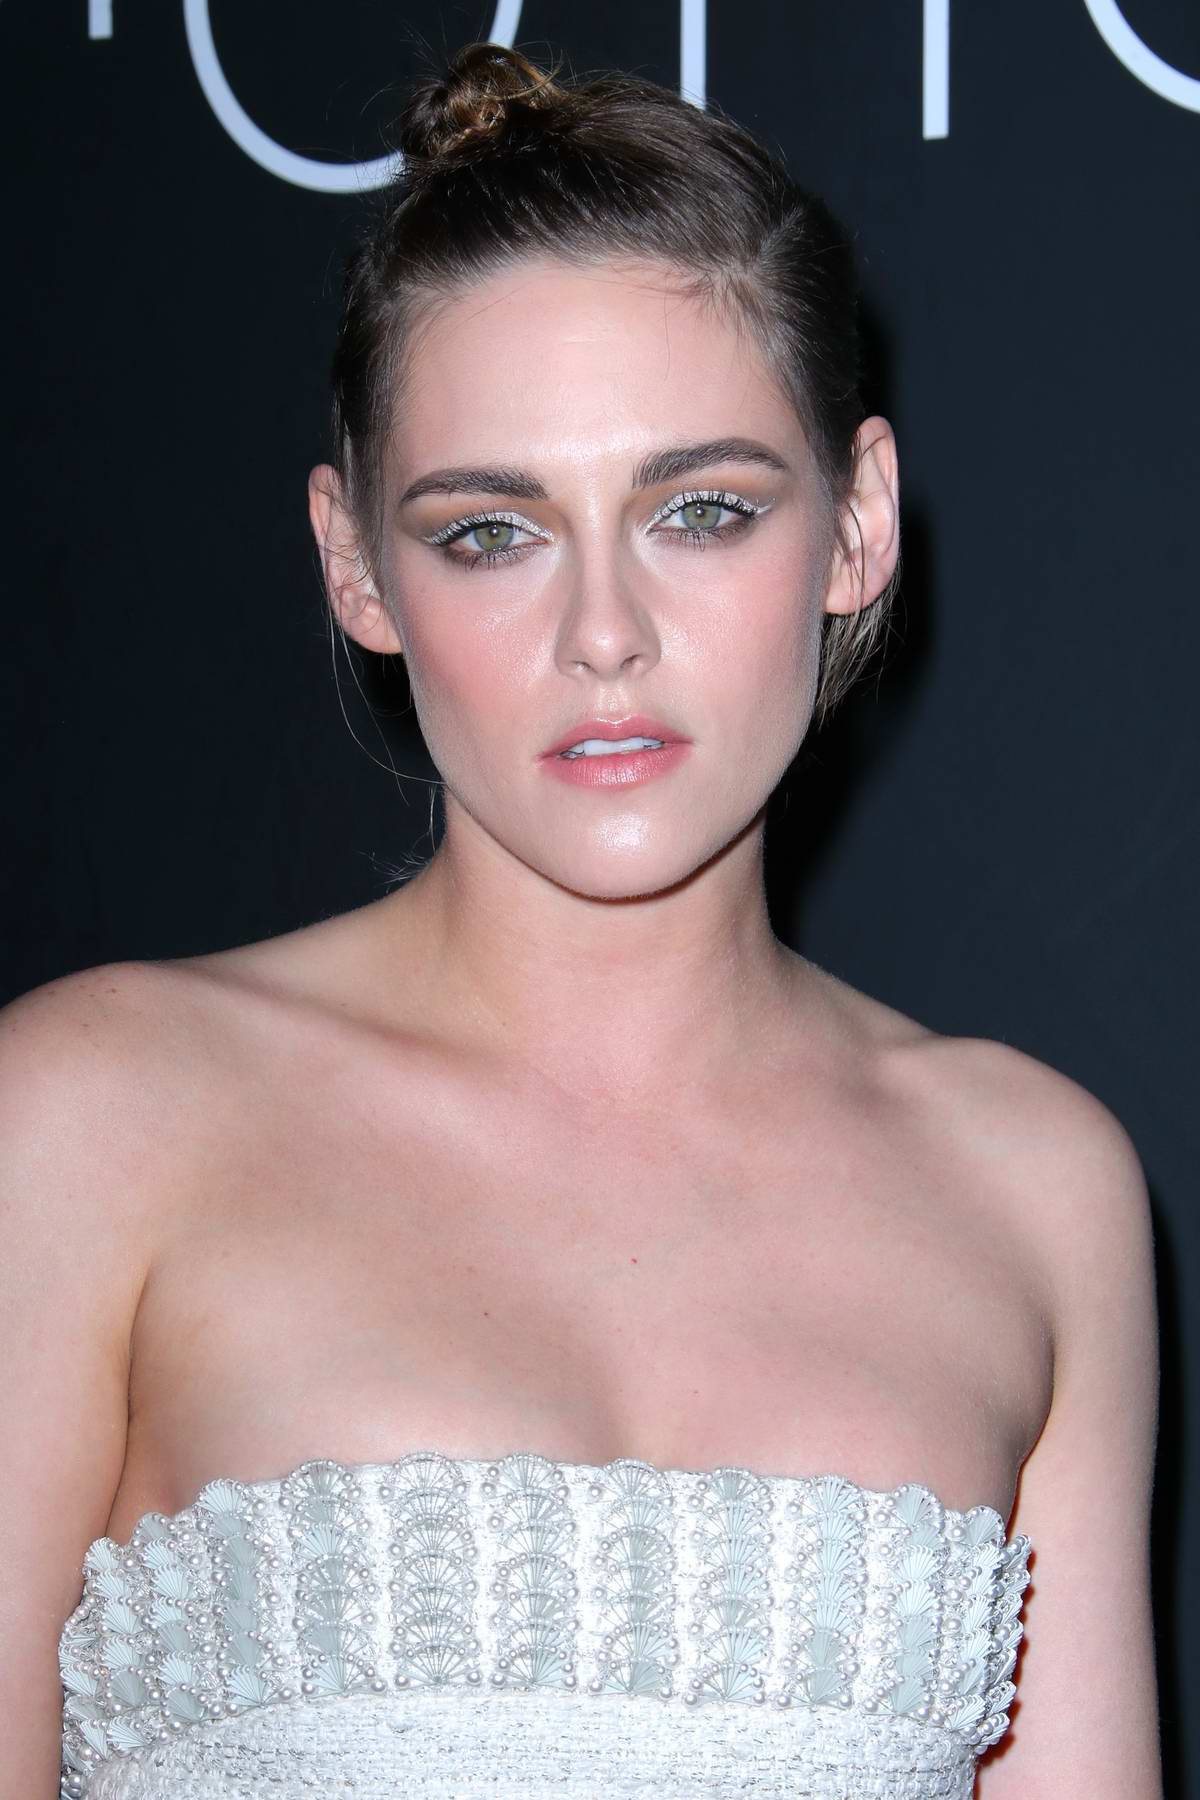 Kristen Stewart attends Kering Women in Motion Photocall during 71st Cannes Film Festival in Cannes, France